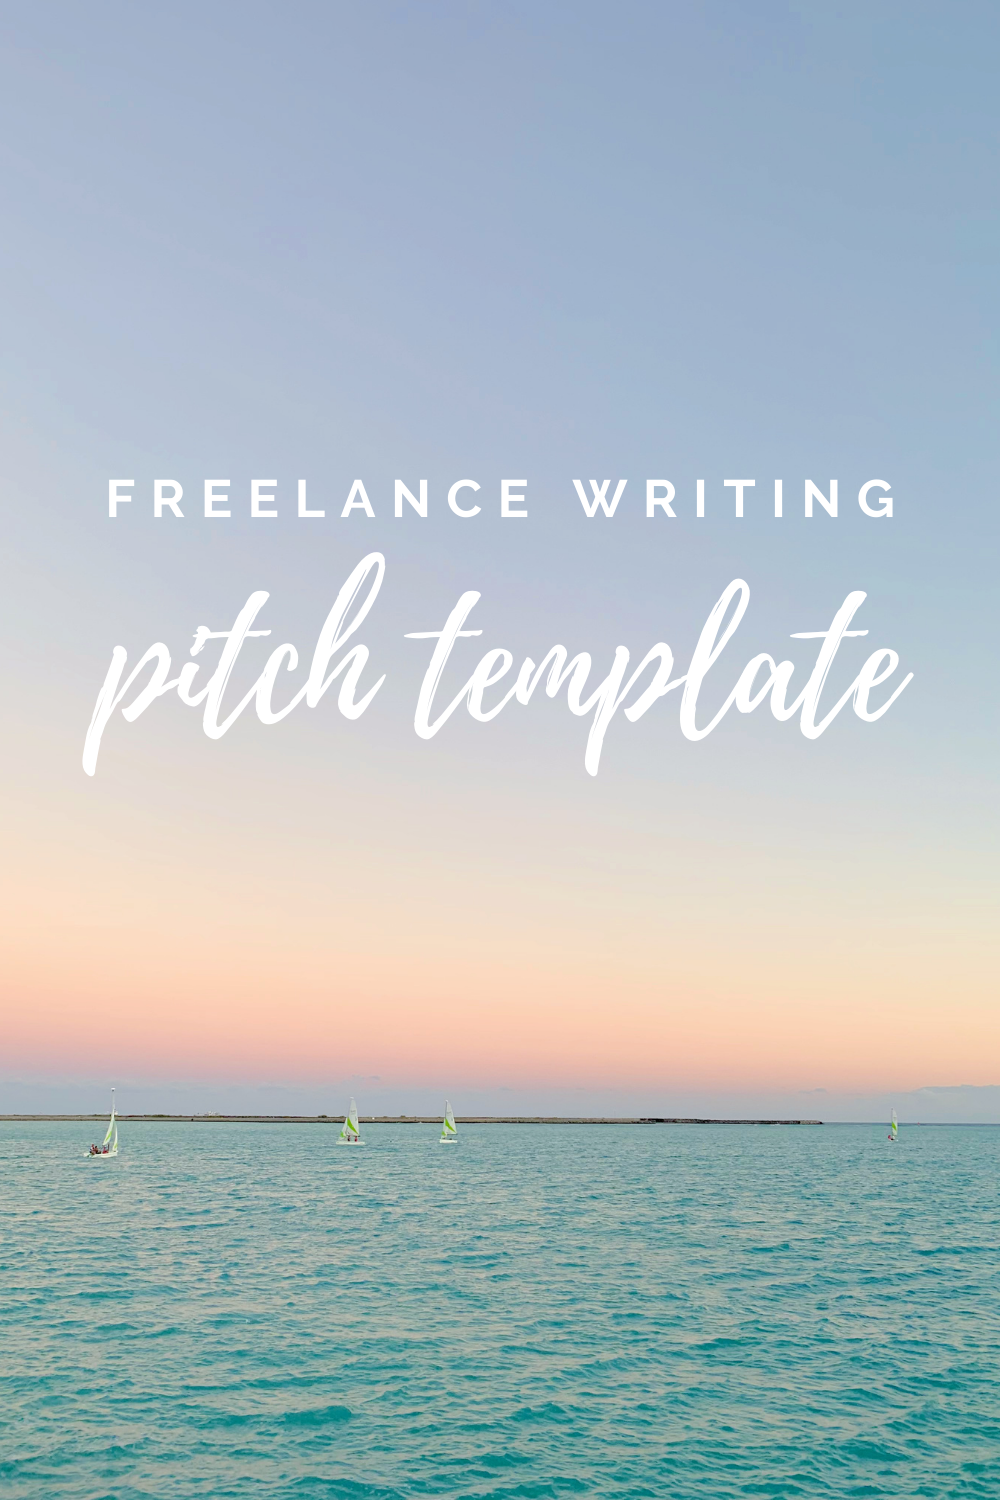 Freelance Writing Pitch Example - Every writer is always looking for freelance writing jobs, right? Here is a pitch example to get you started!